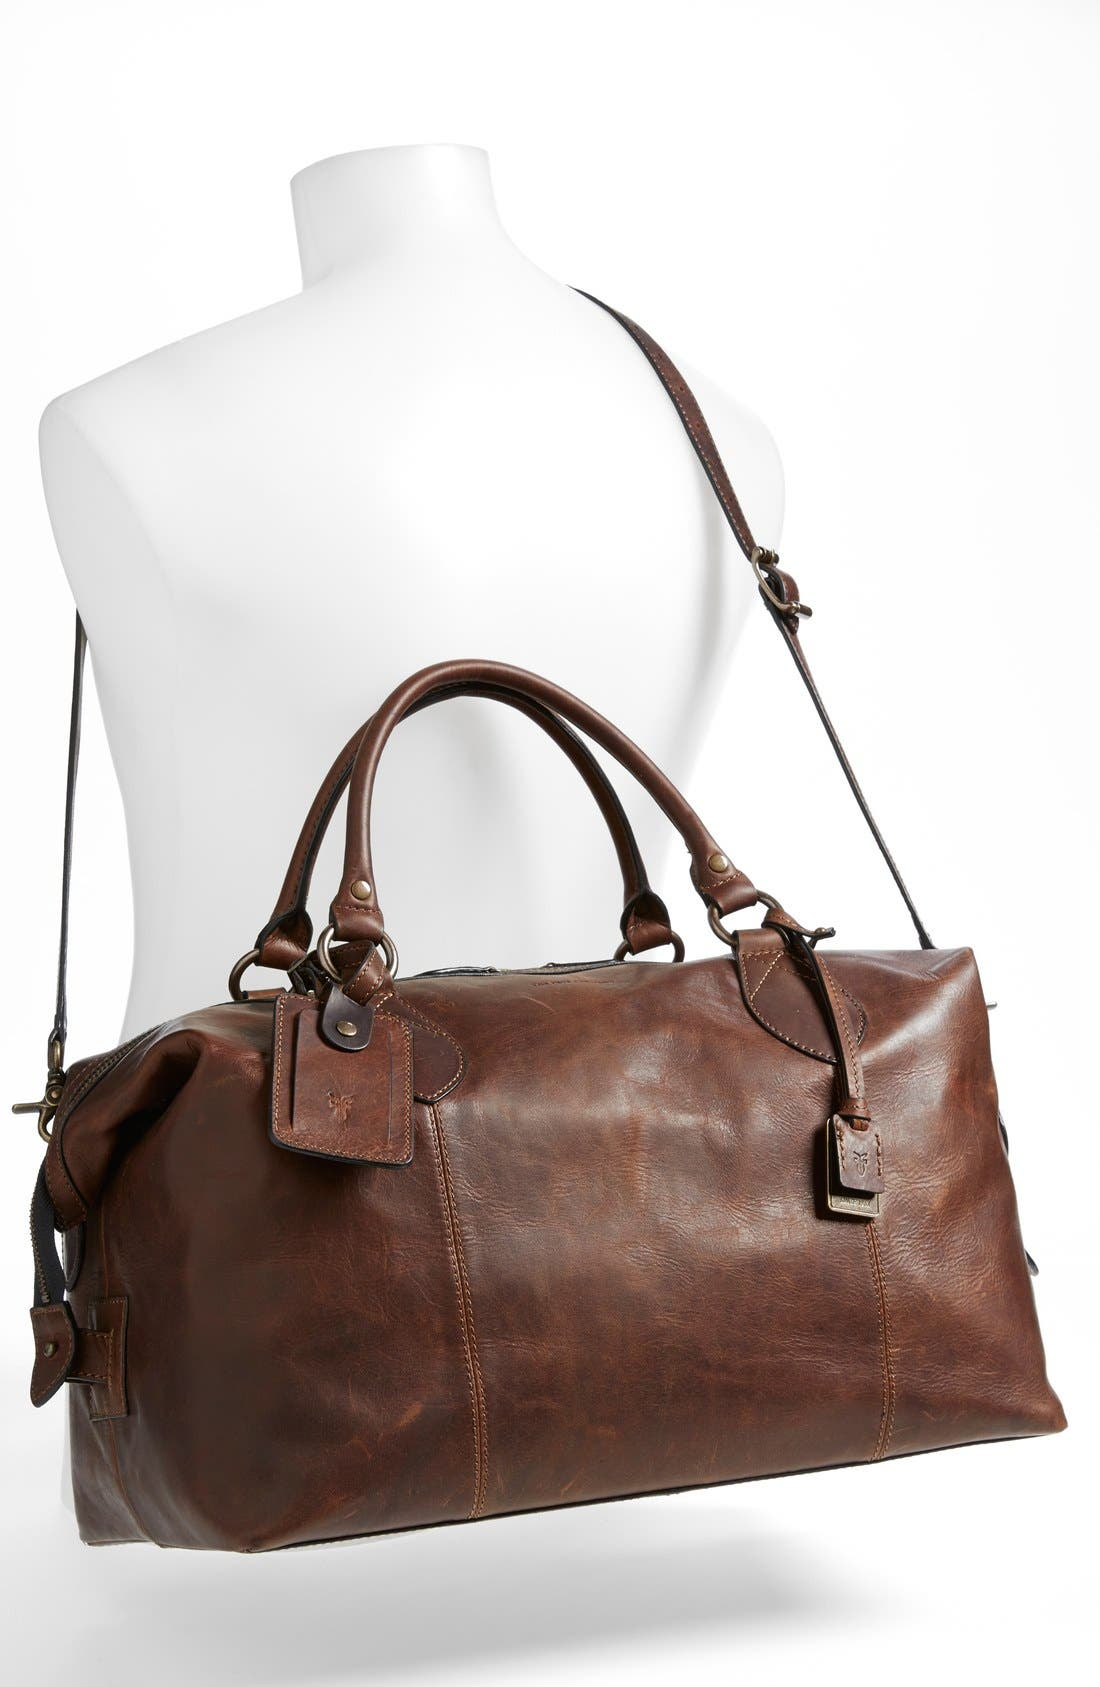 Men's Duffel Bags: Leather, Fabric, Wheeled & More | Nordstrom